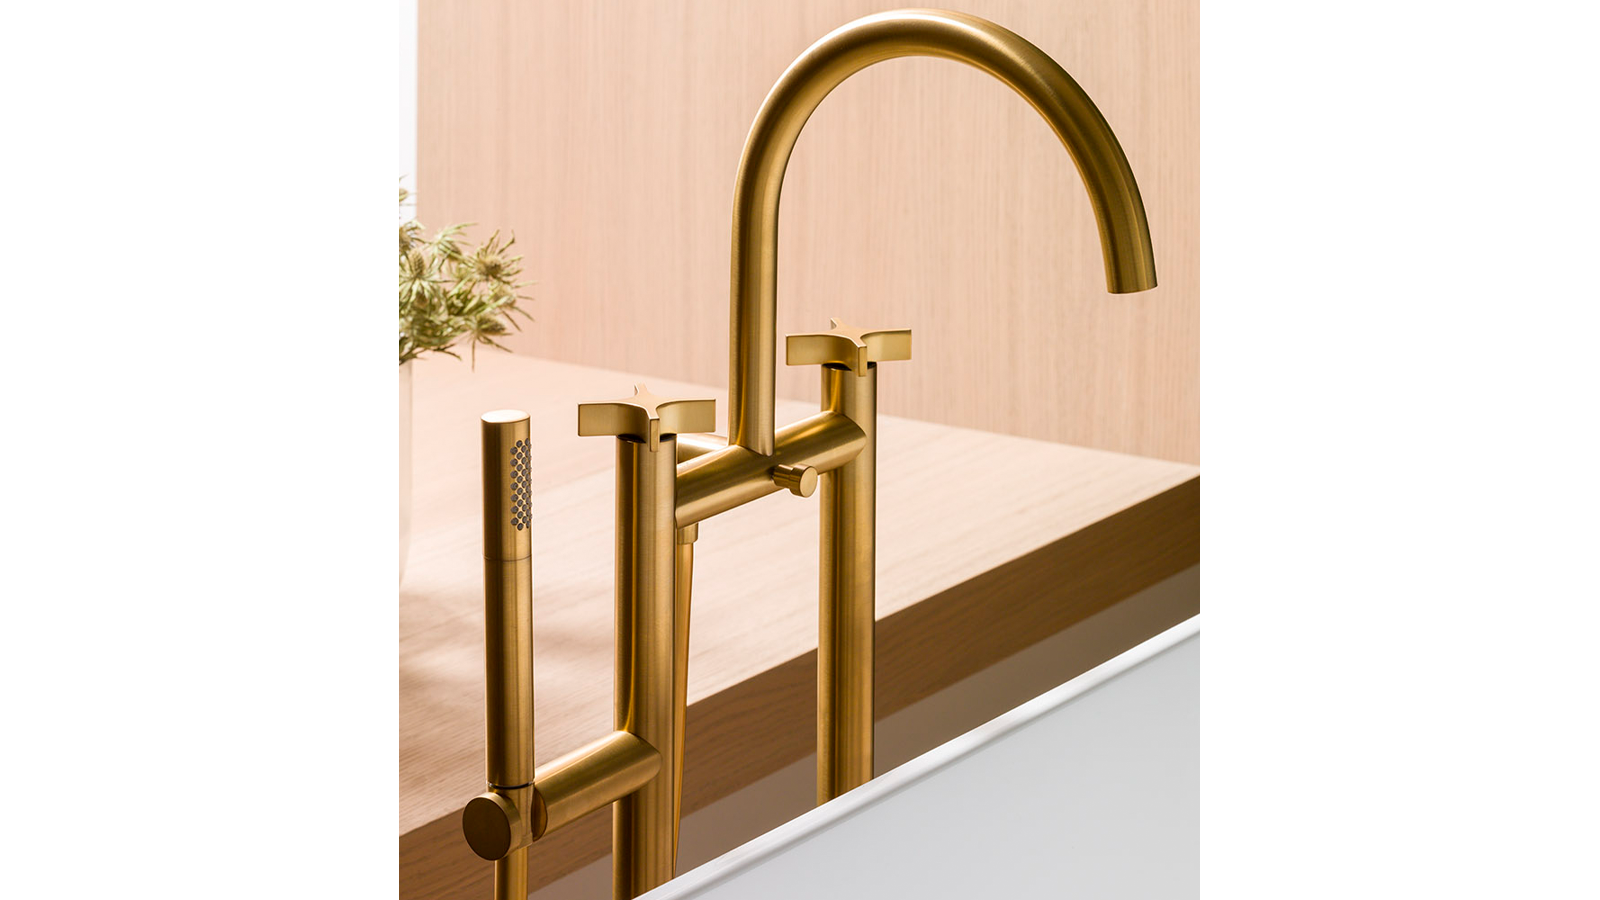 Oro Cepillado brushed gold Lignage bathroom and shower taps